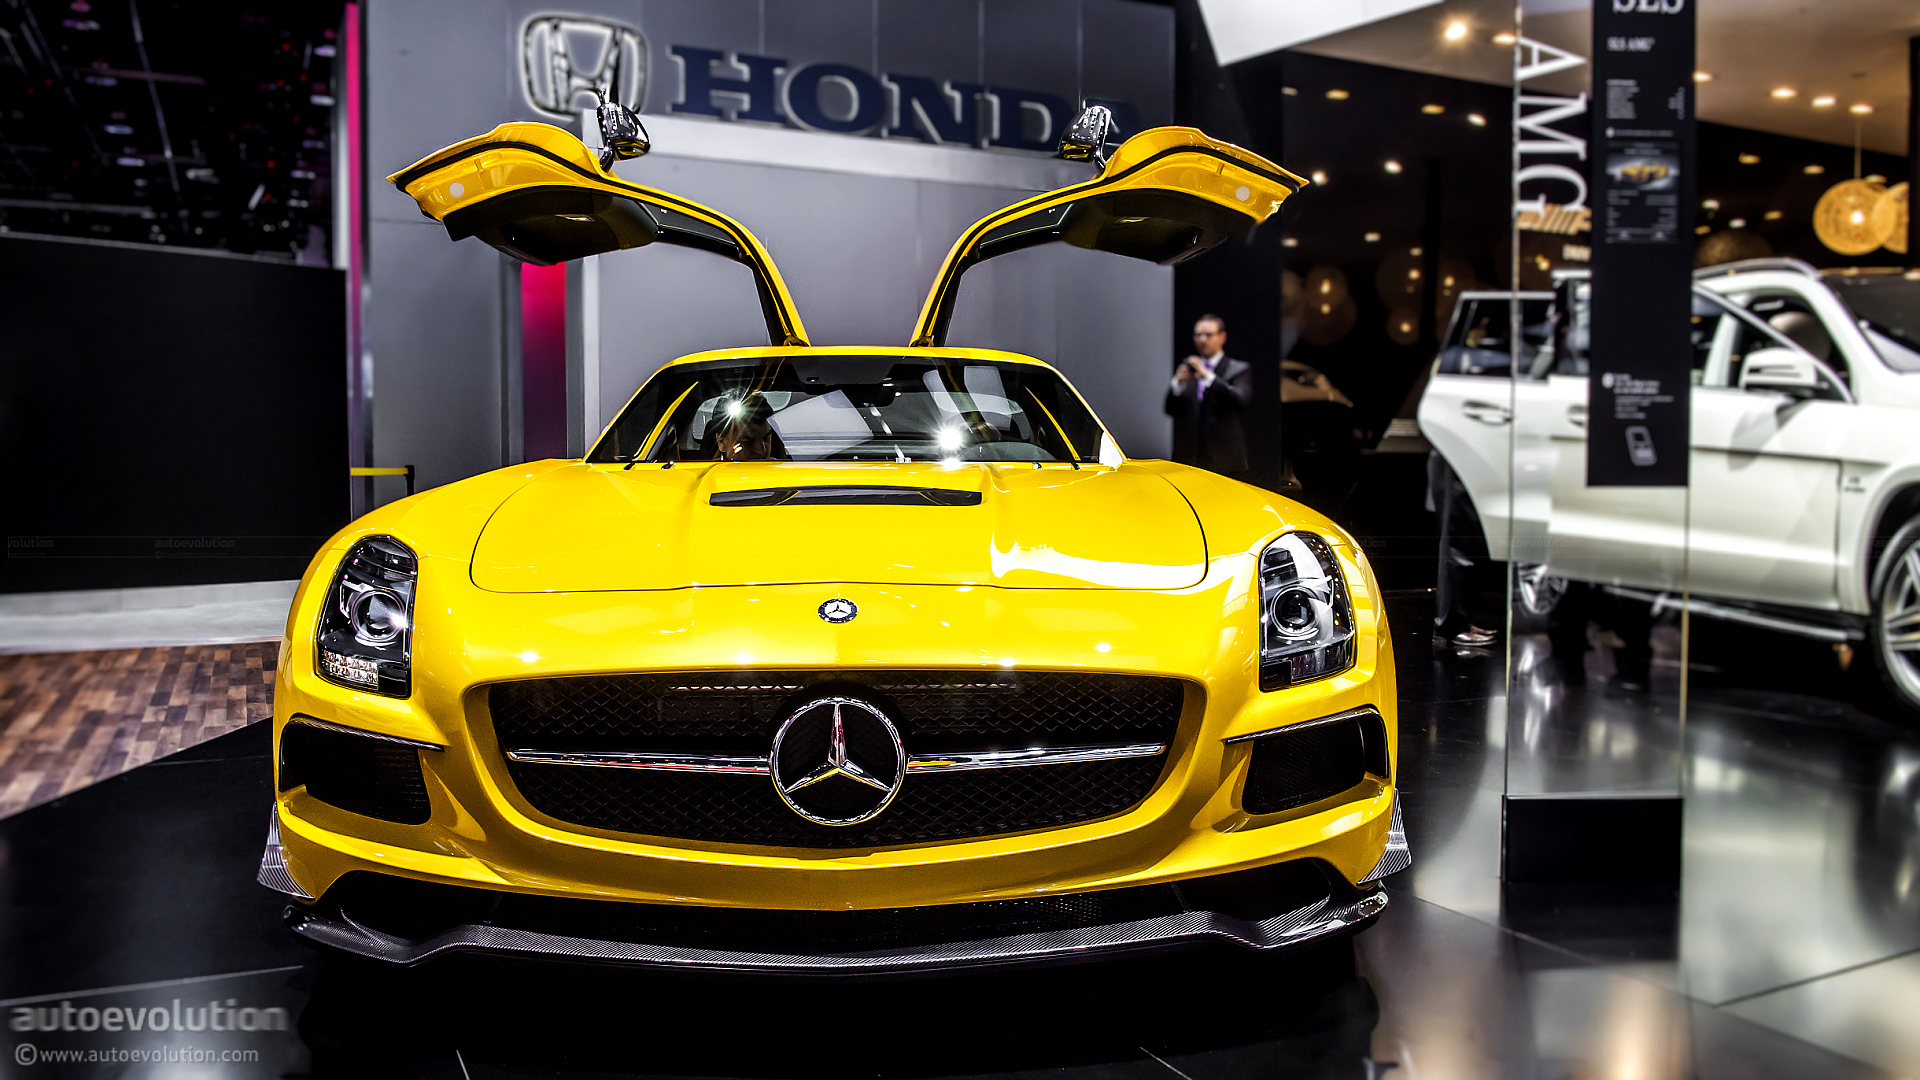 Jeep Cherokee Sport For Sale >> 2014 Mercedes SLS AMG Black Series US Pricing Announced - autoevolution